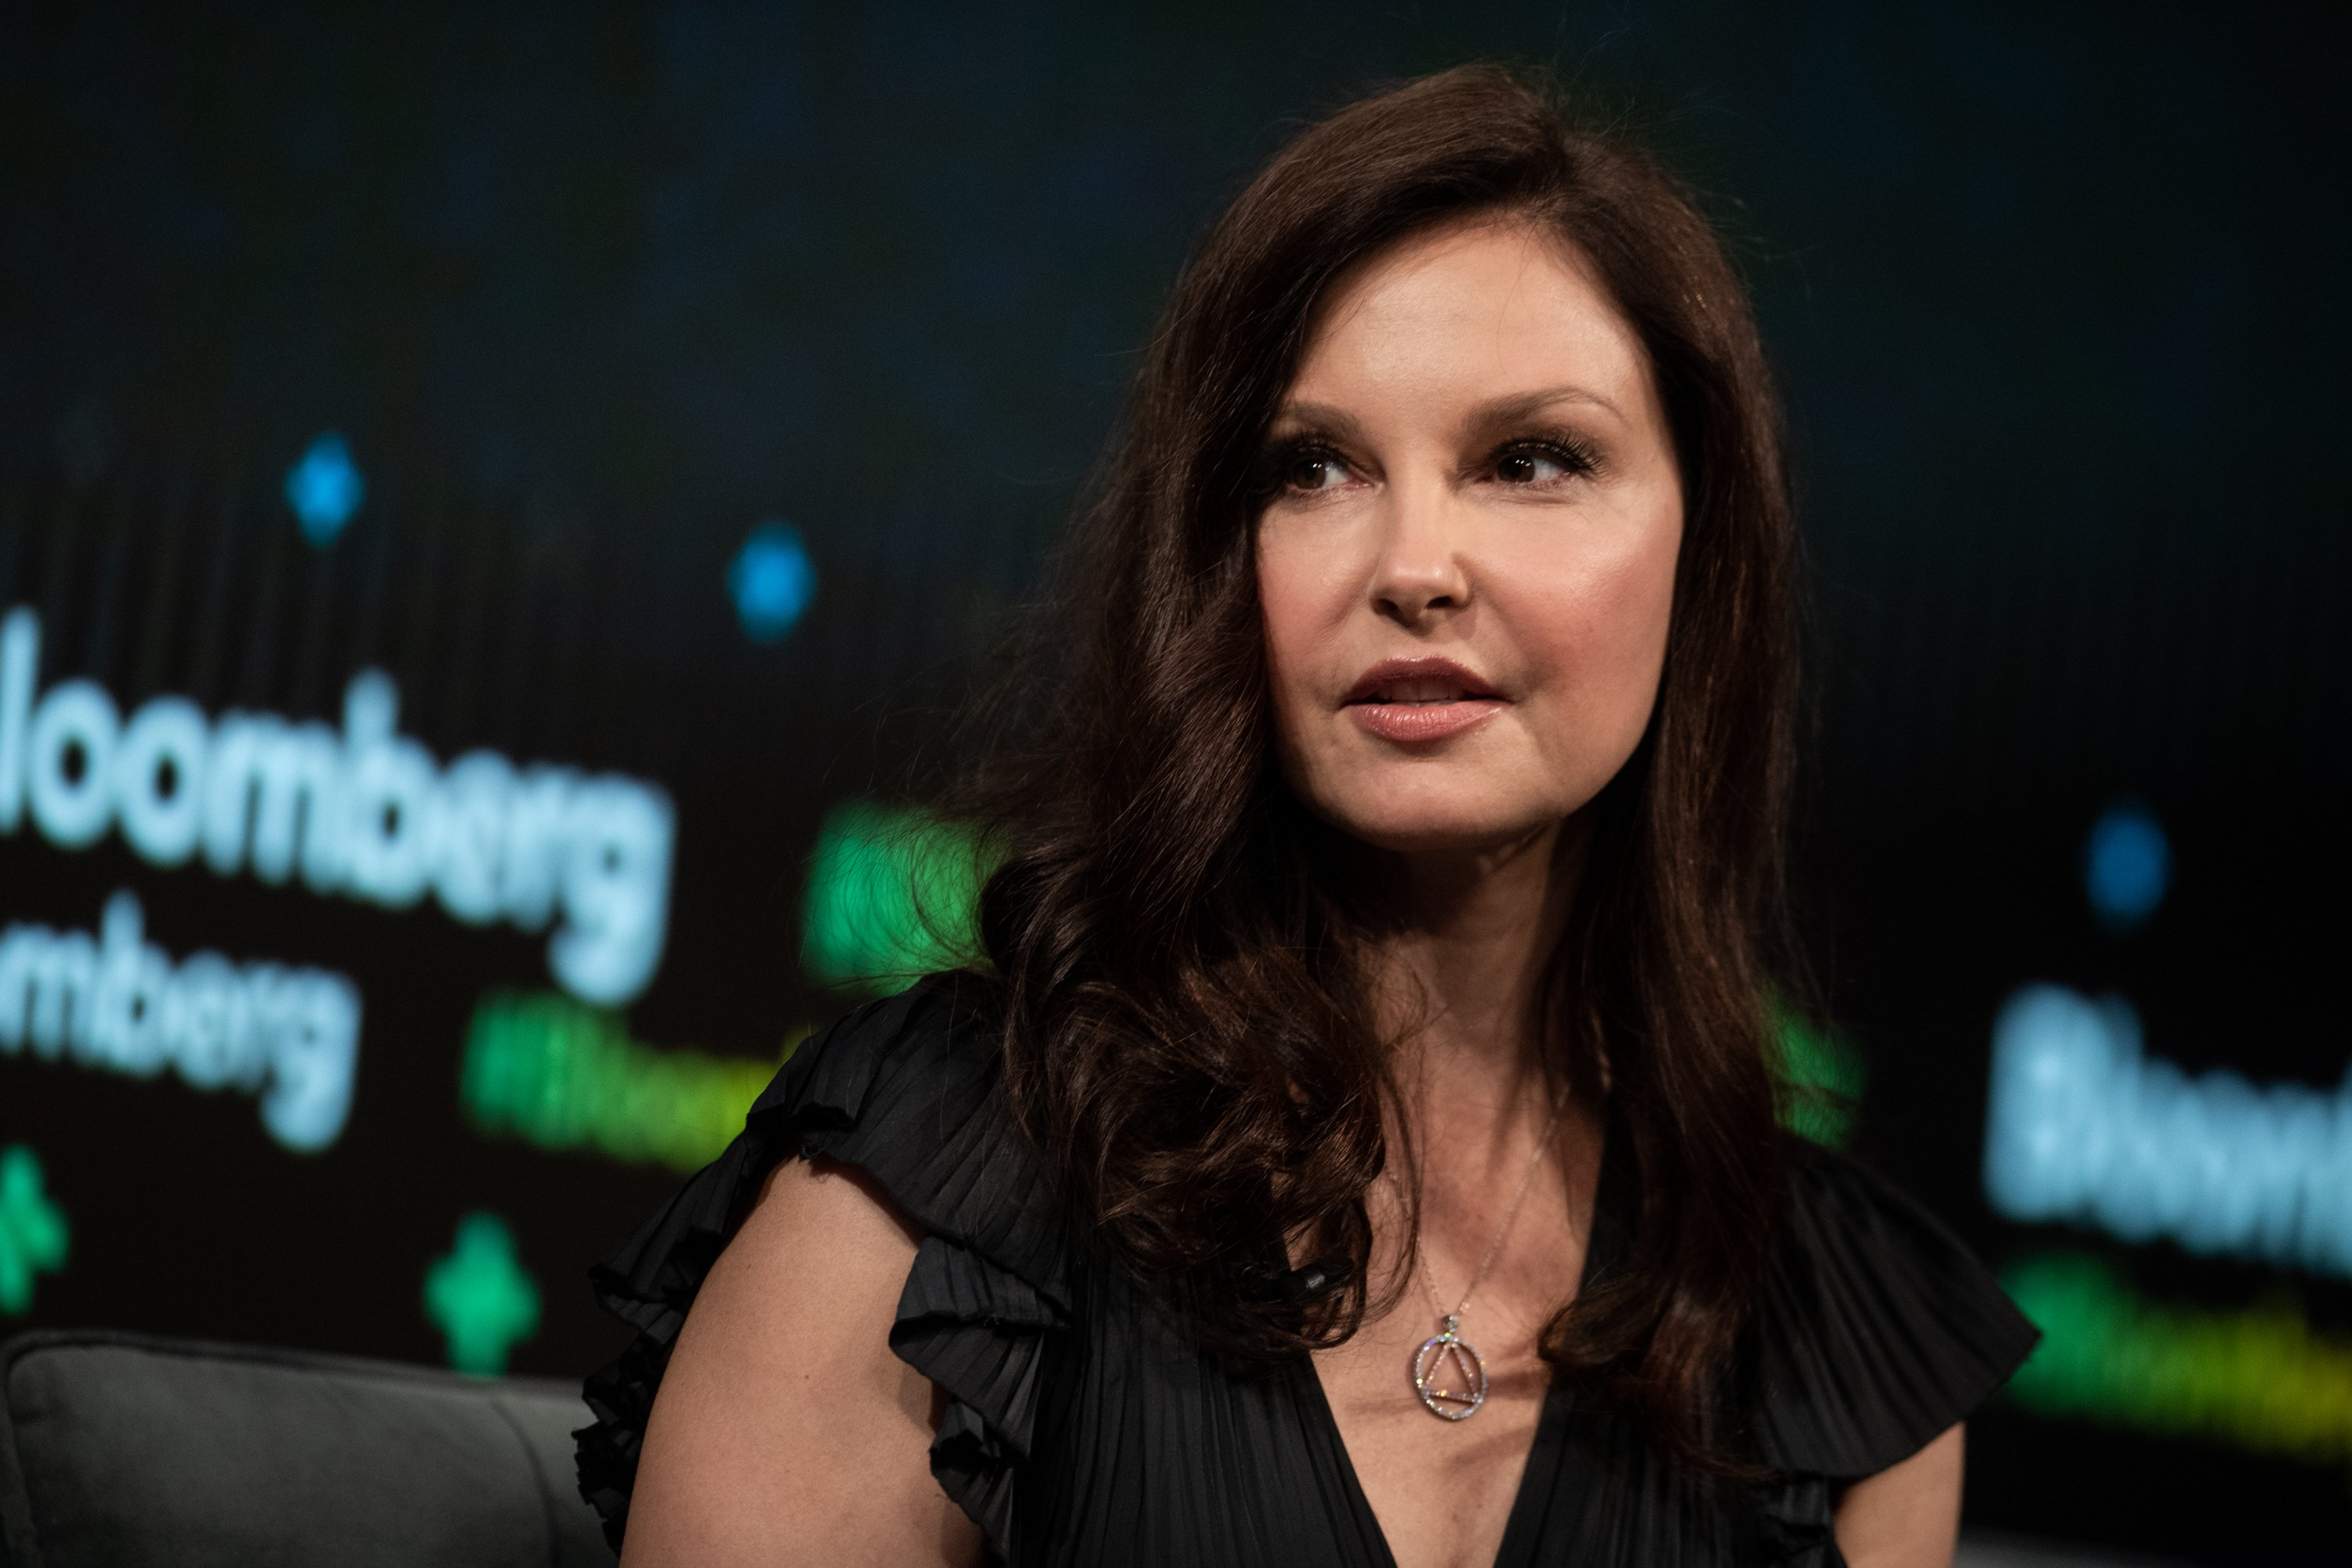 Ashley Judd speaks during the Bloomberg Business of Equality conference in New York, U.S., on May 8, 2018 | Photo: Getty Images